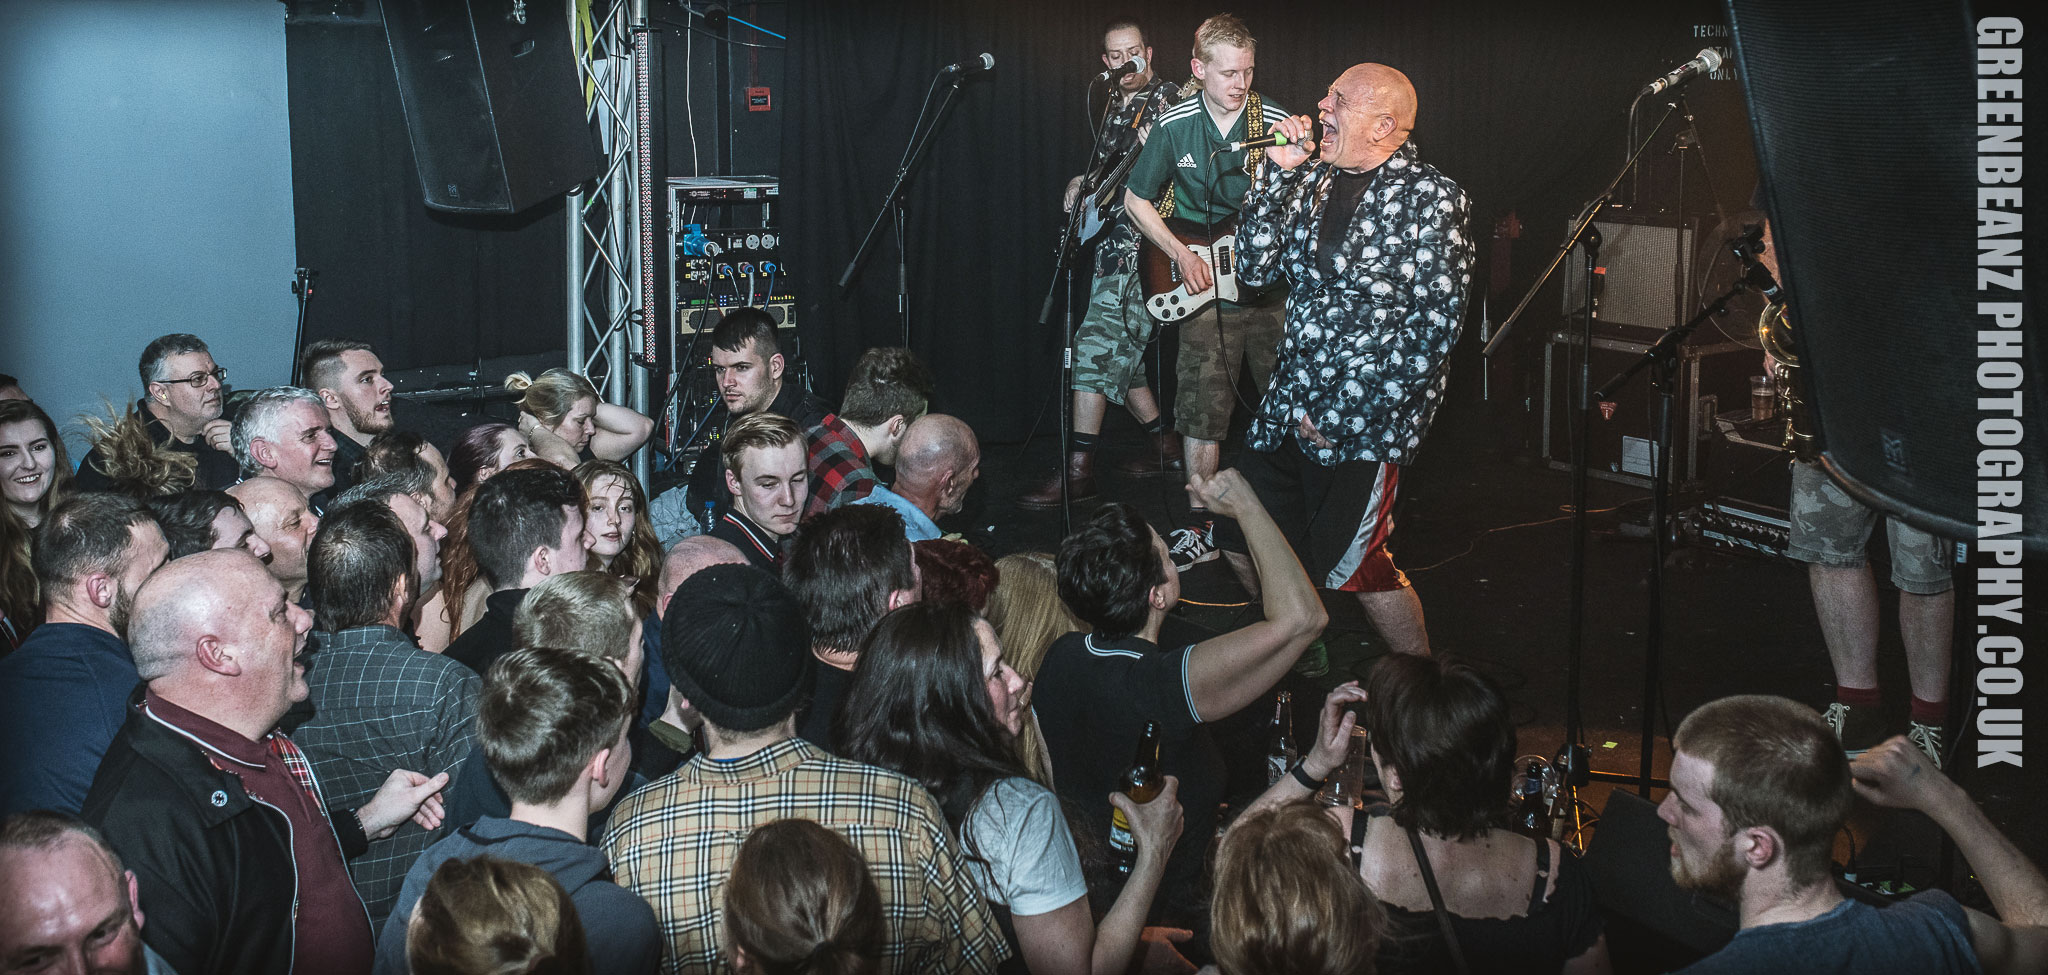 Bad Manners UK SKA legends live at The Hub Plymouth